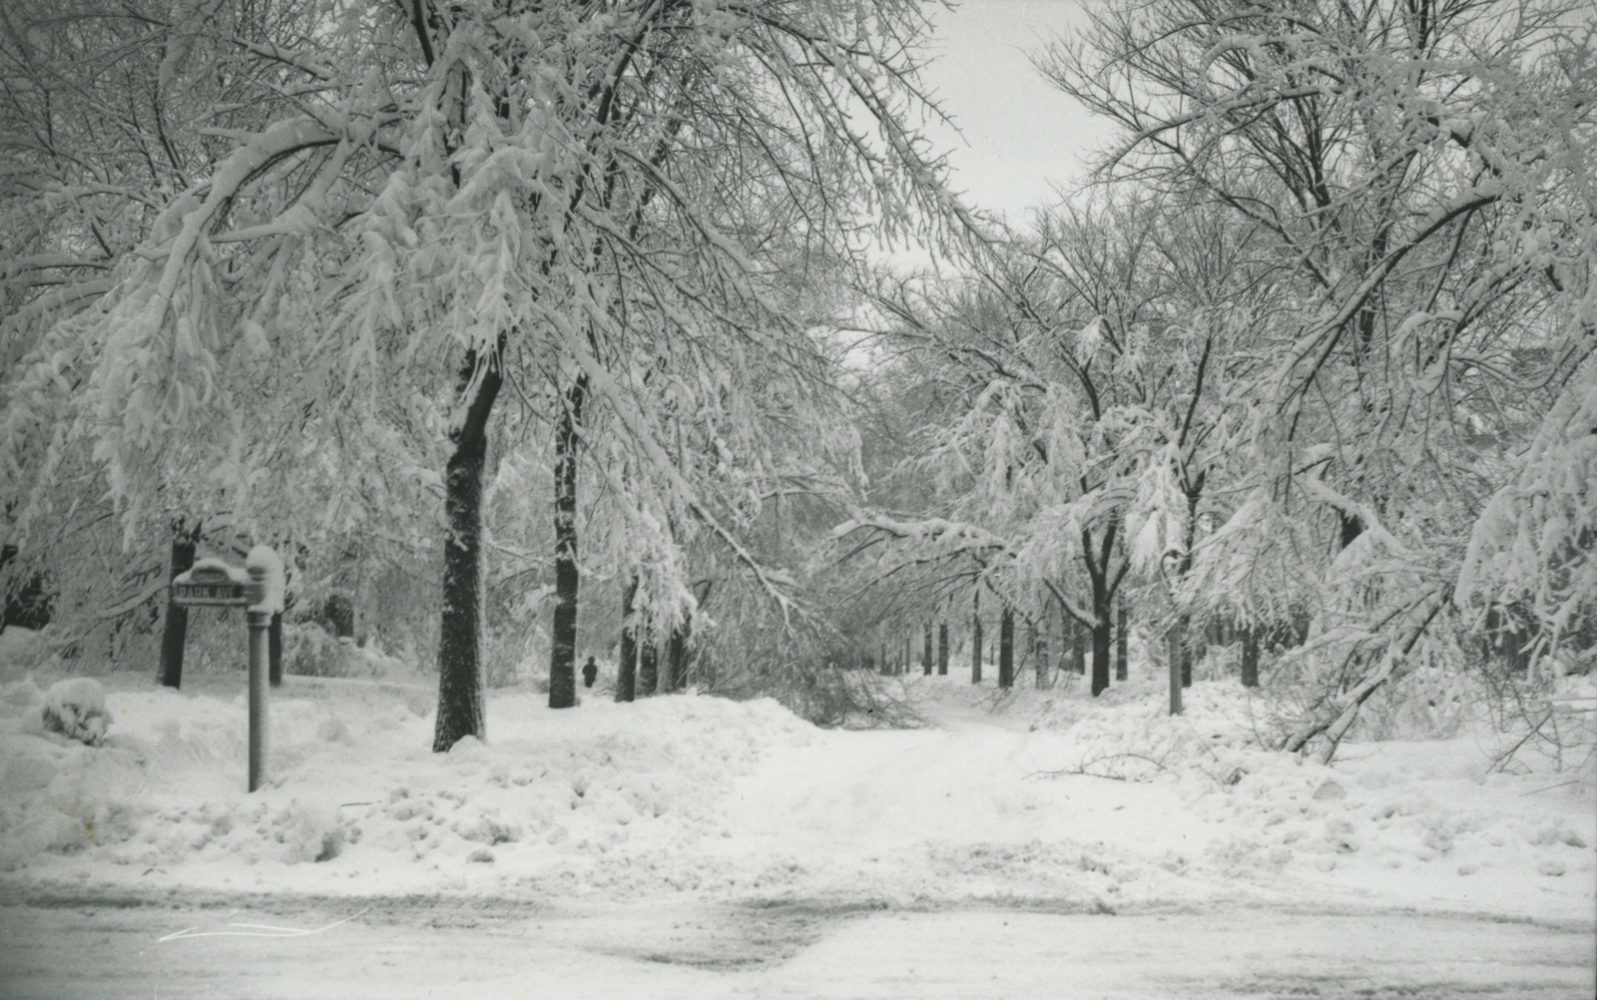 Park Avenue after snow storm in 1945 – photo from City of Rochester